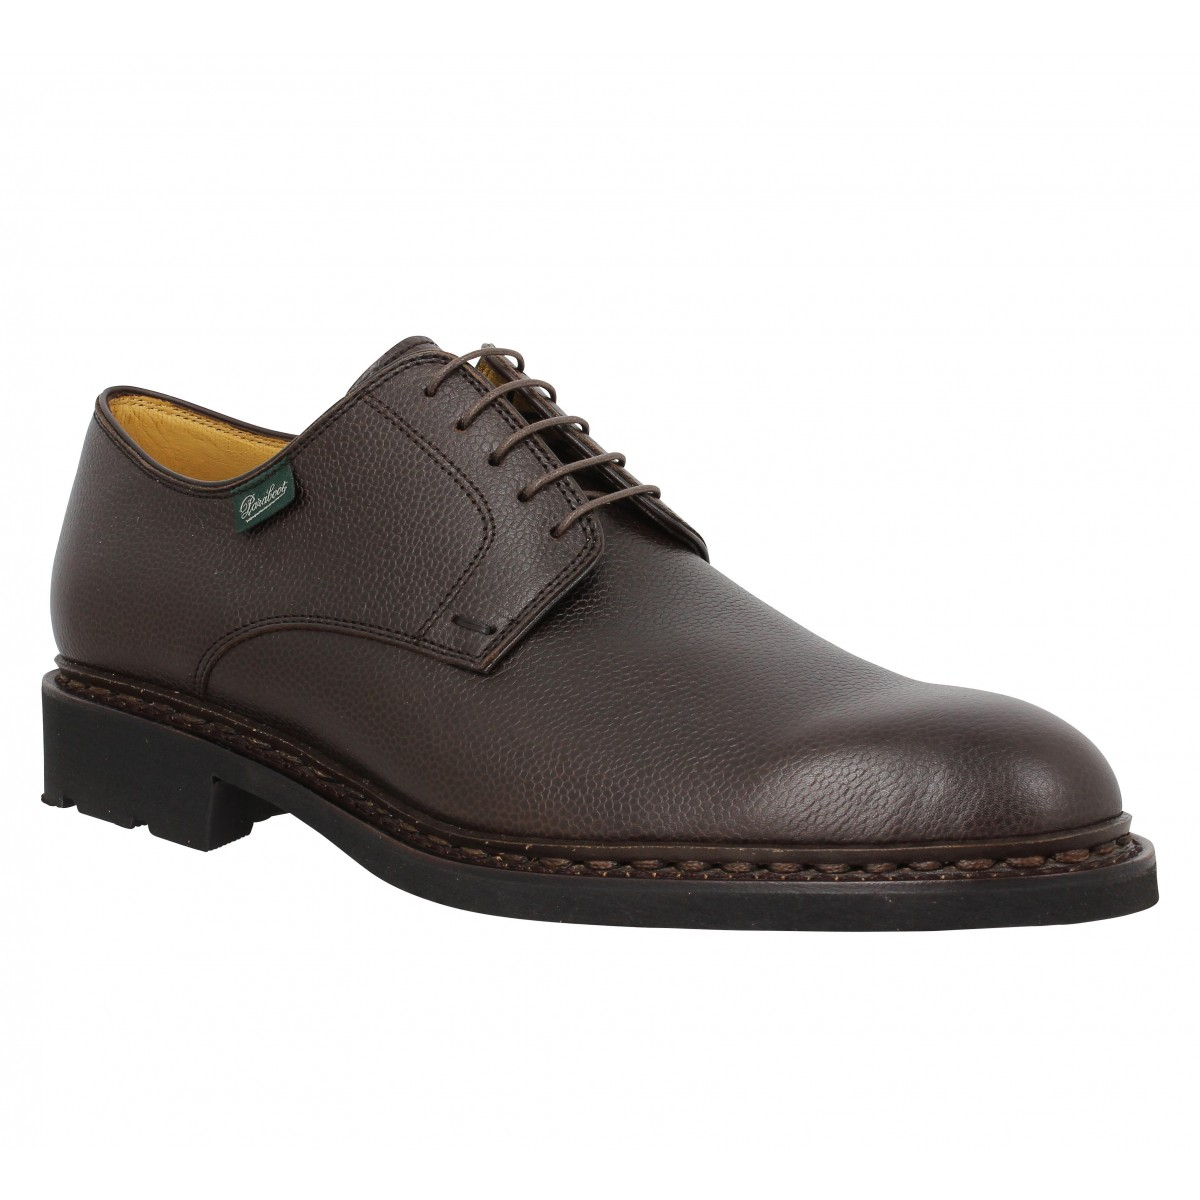 Chaussures à lacets PARABOOT Frenaye cuir Moka